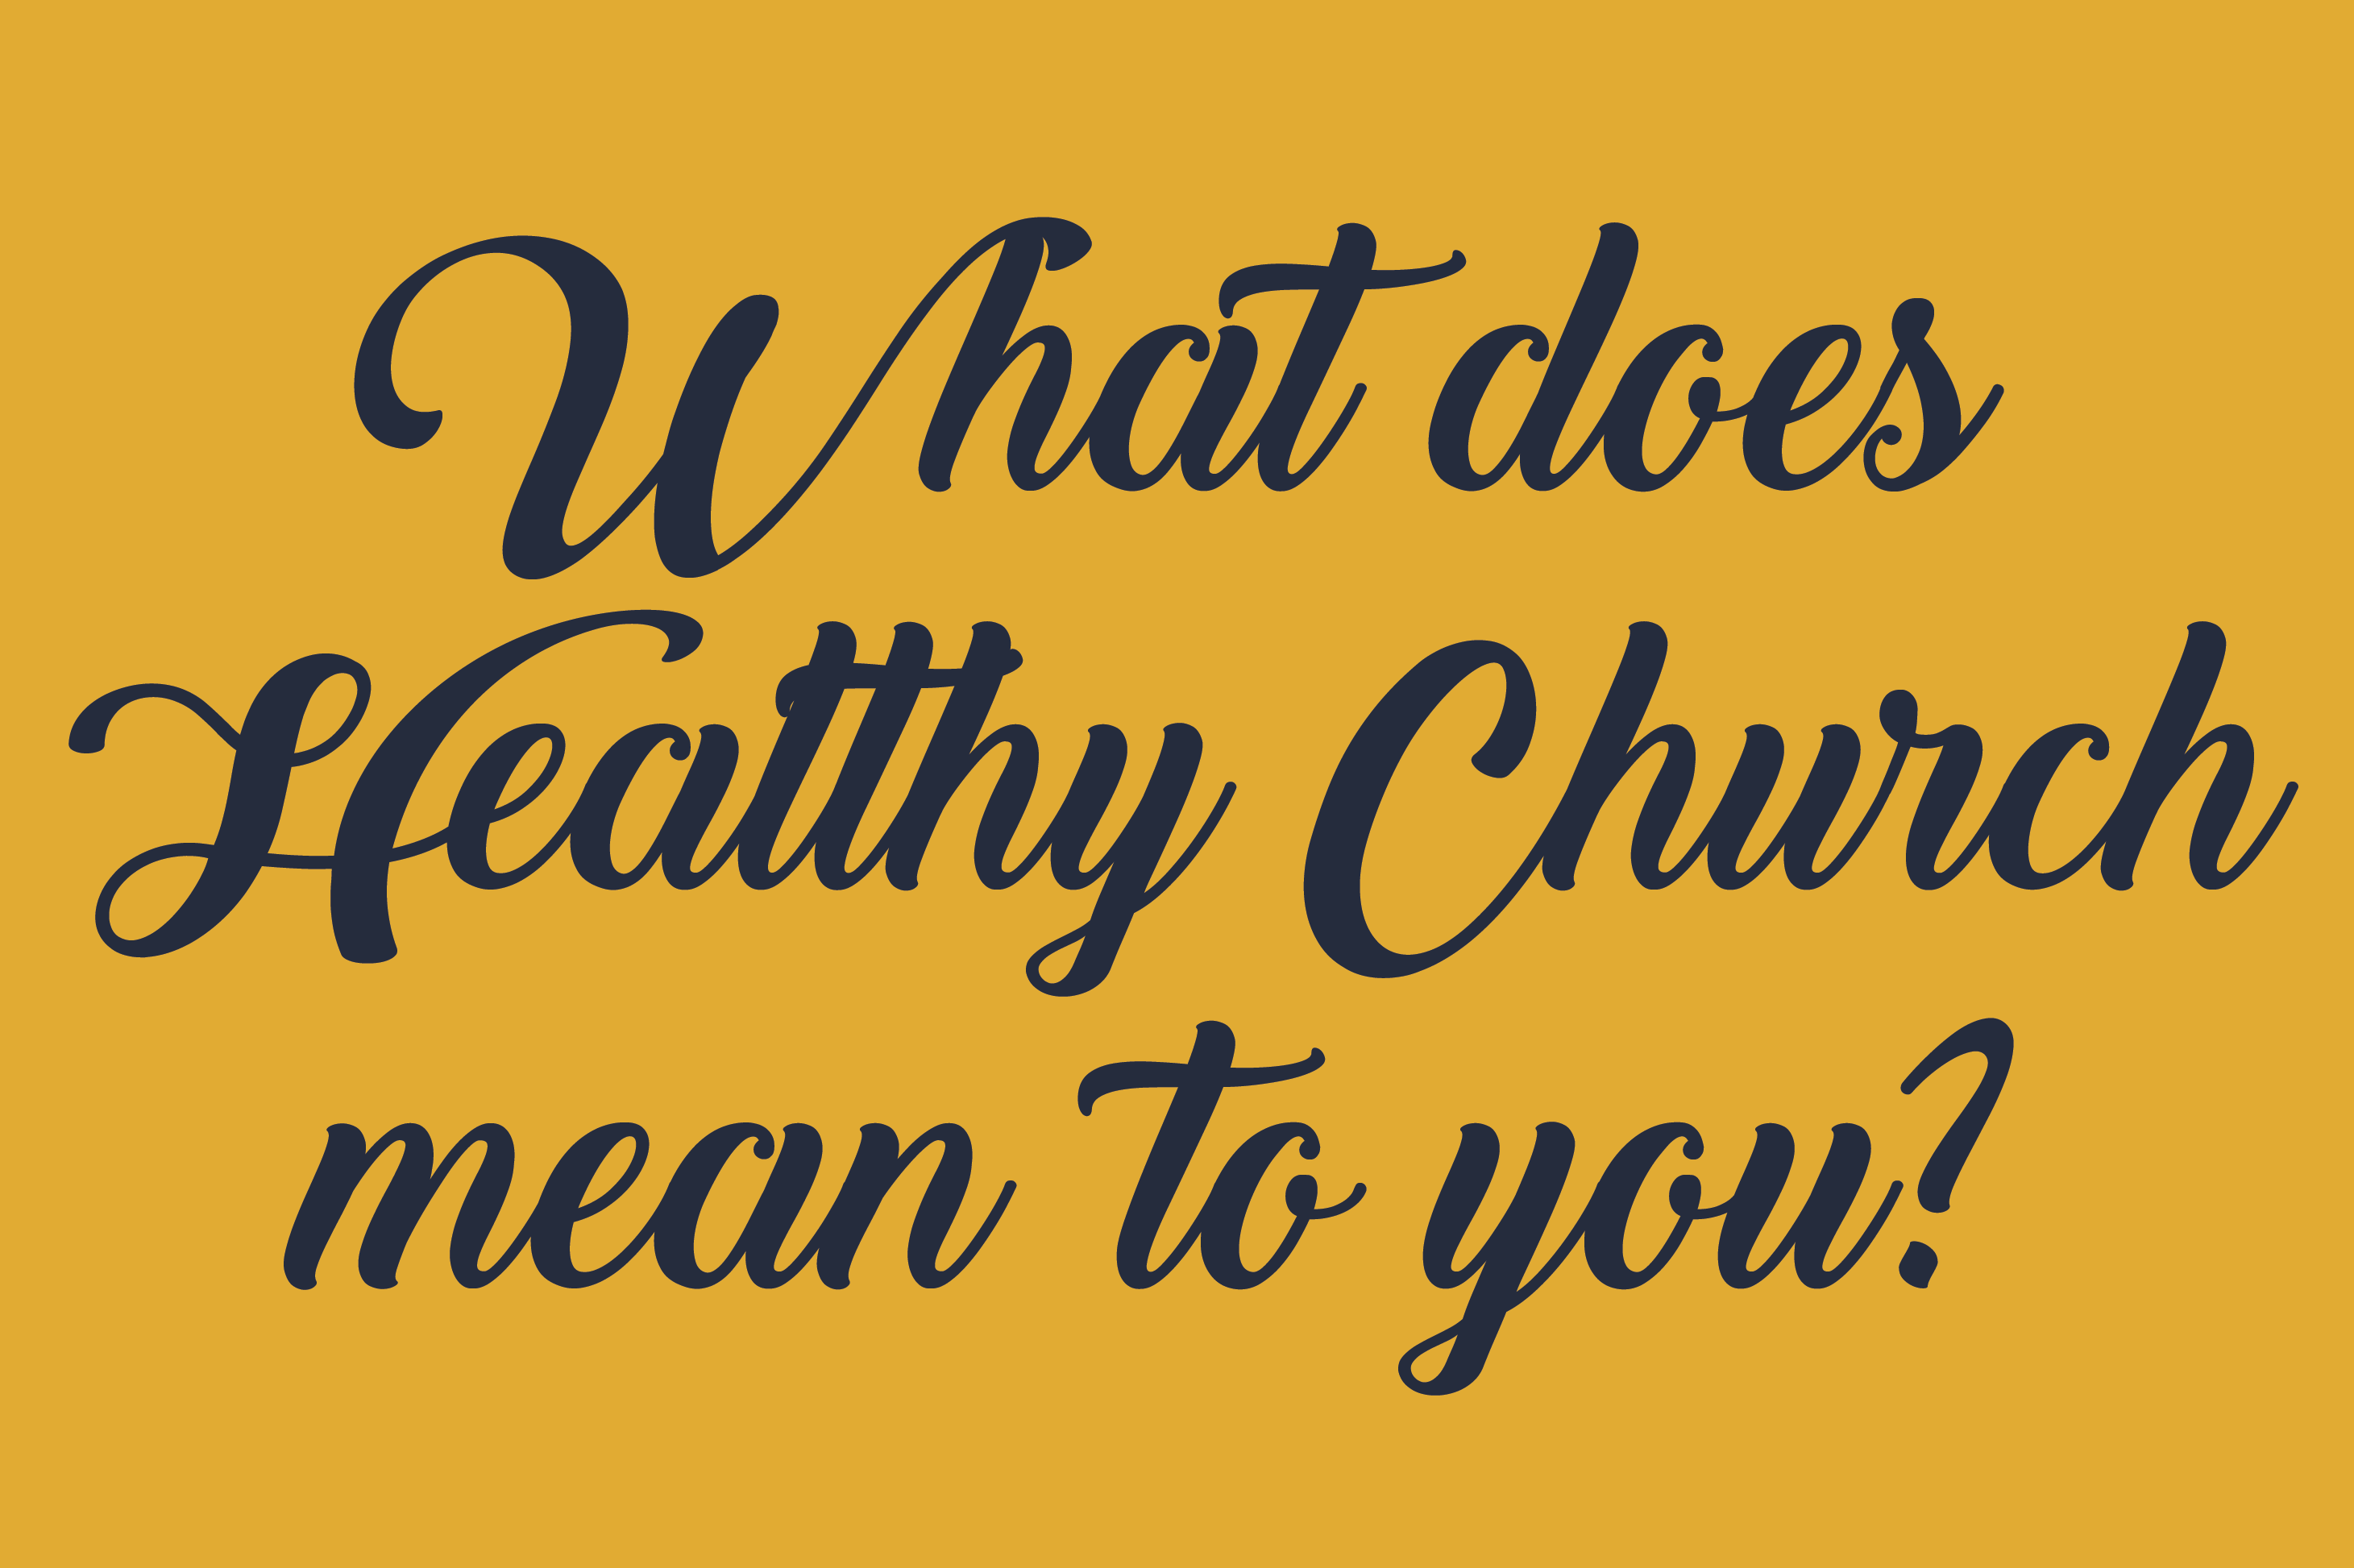 What does Healthy Church mean to you?